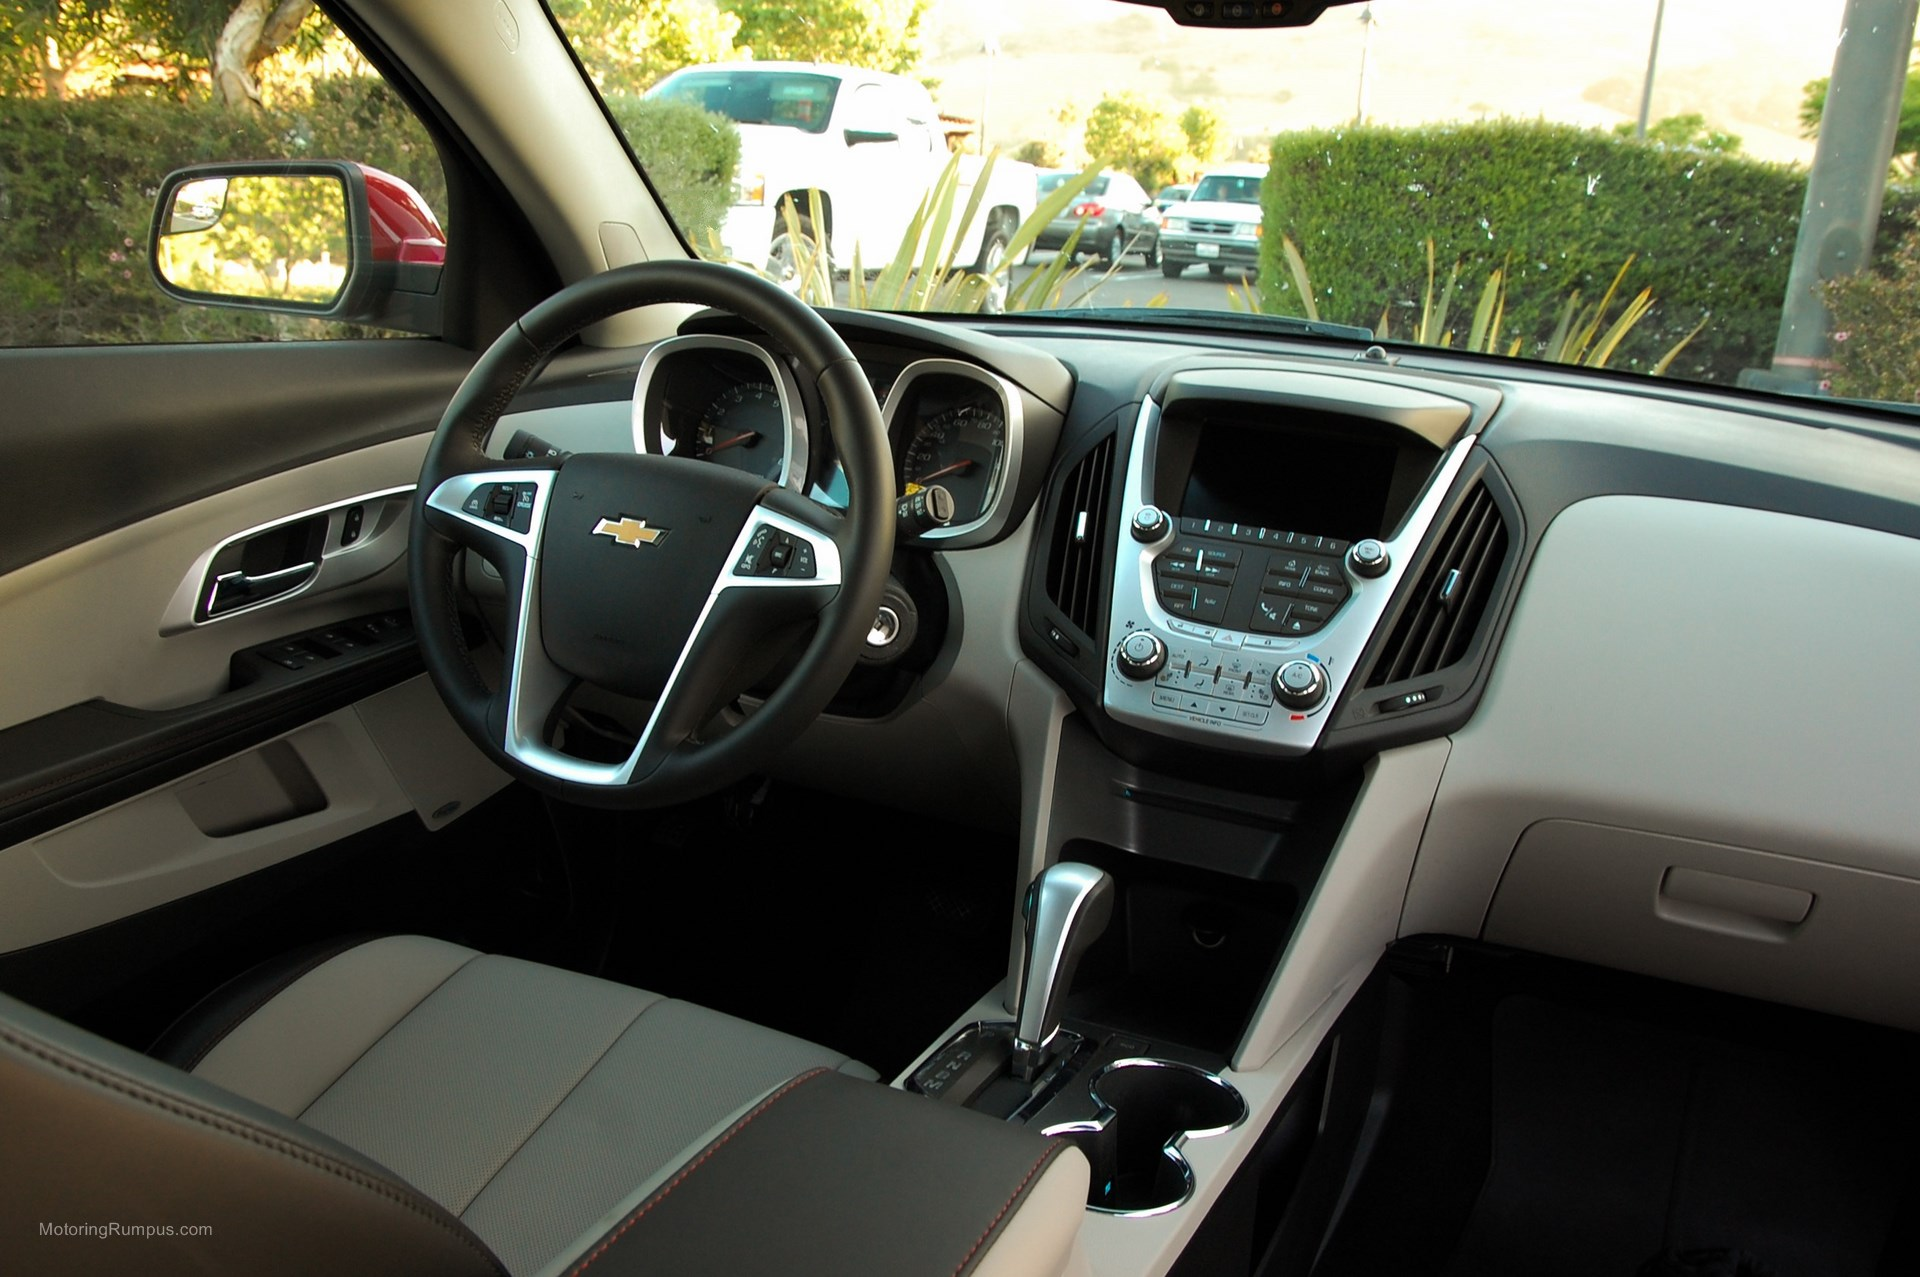 2014 Chevy Equinox Lt Interior Motoring Rumpus